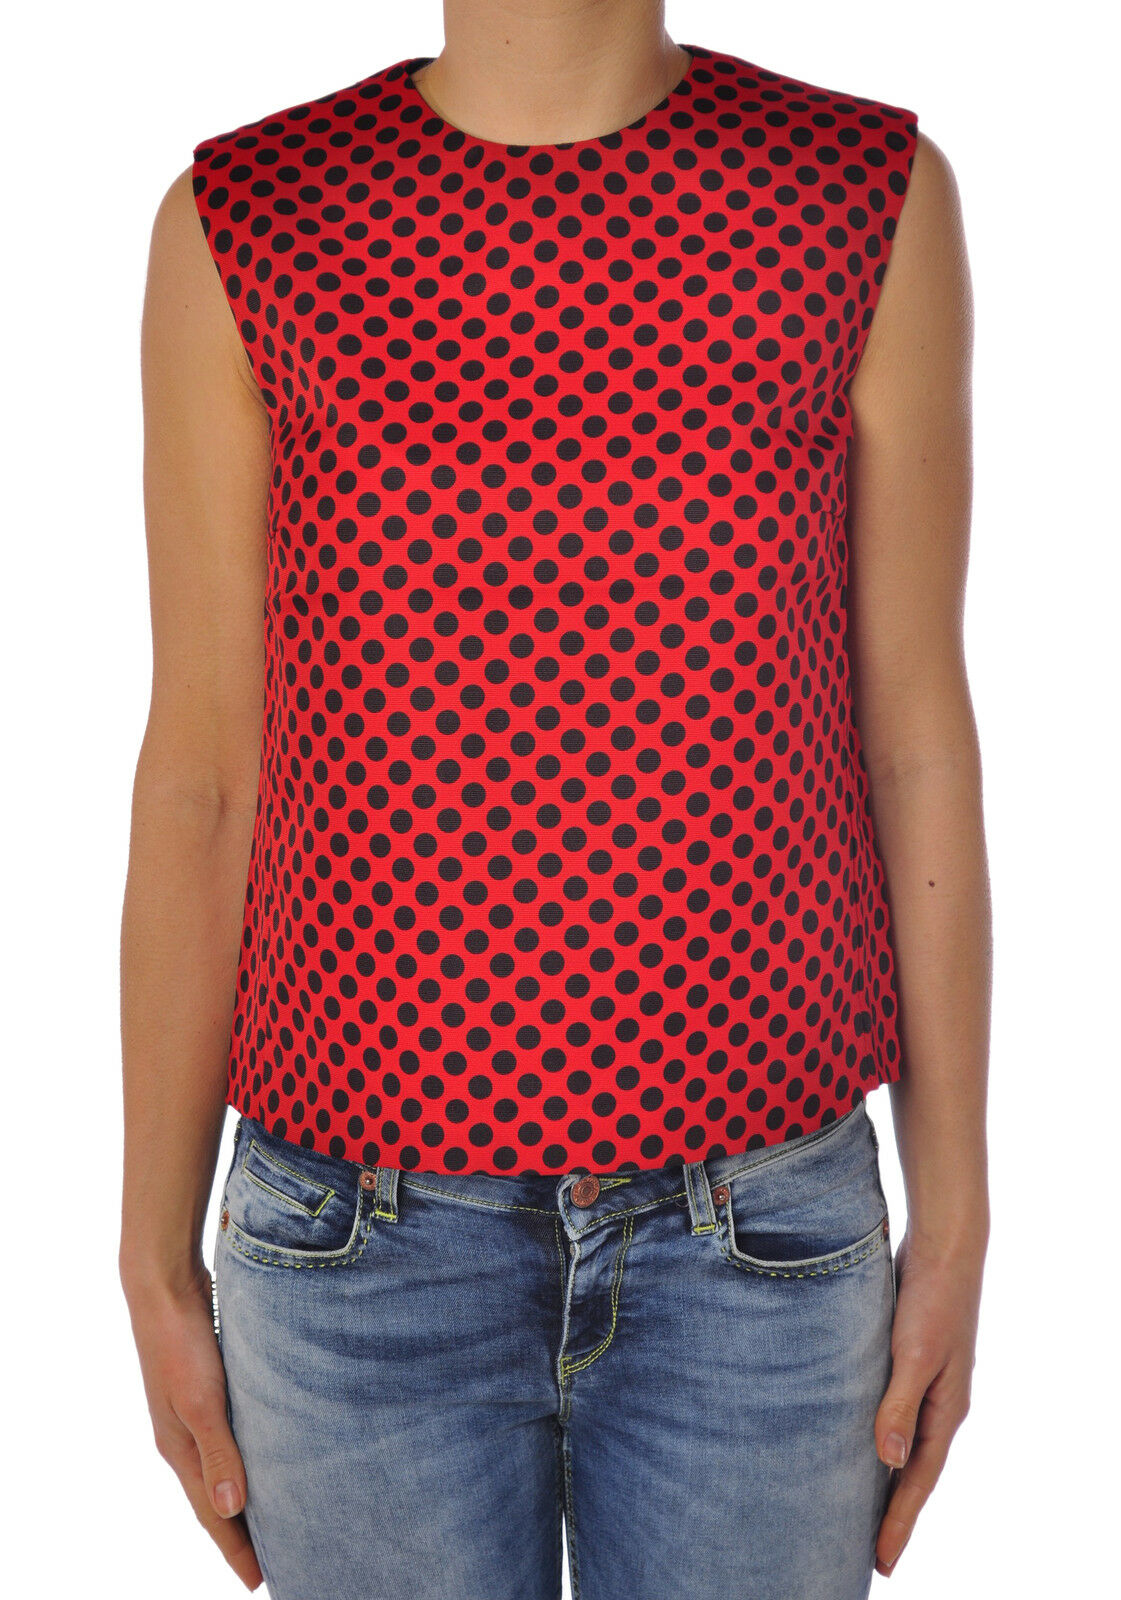 Department 5  -  Blouses - Female - S - Red - 1763219C164944